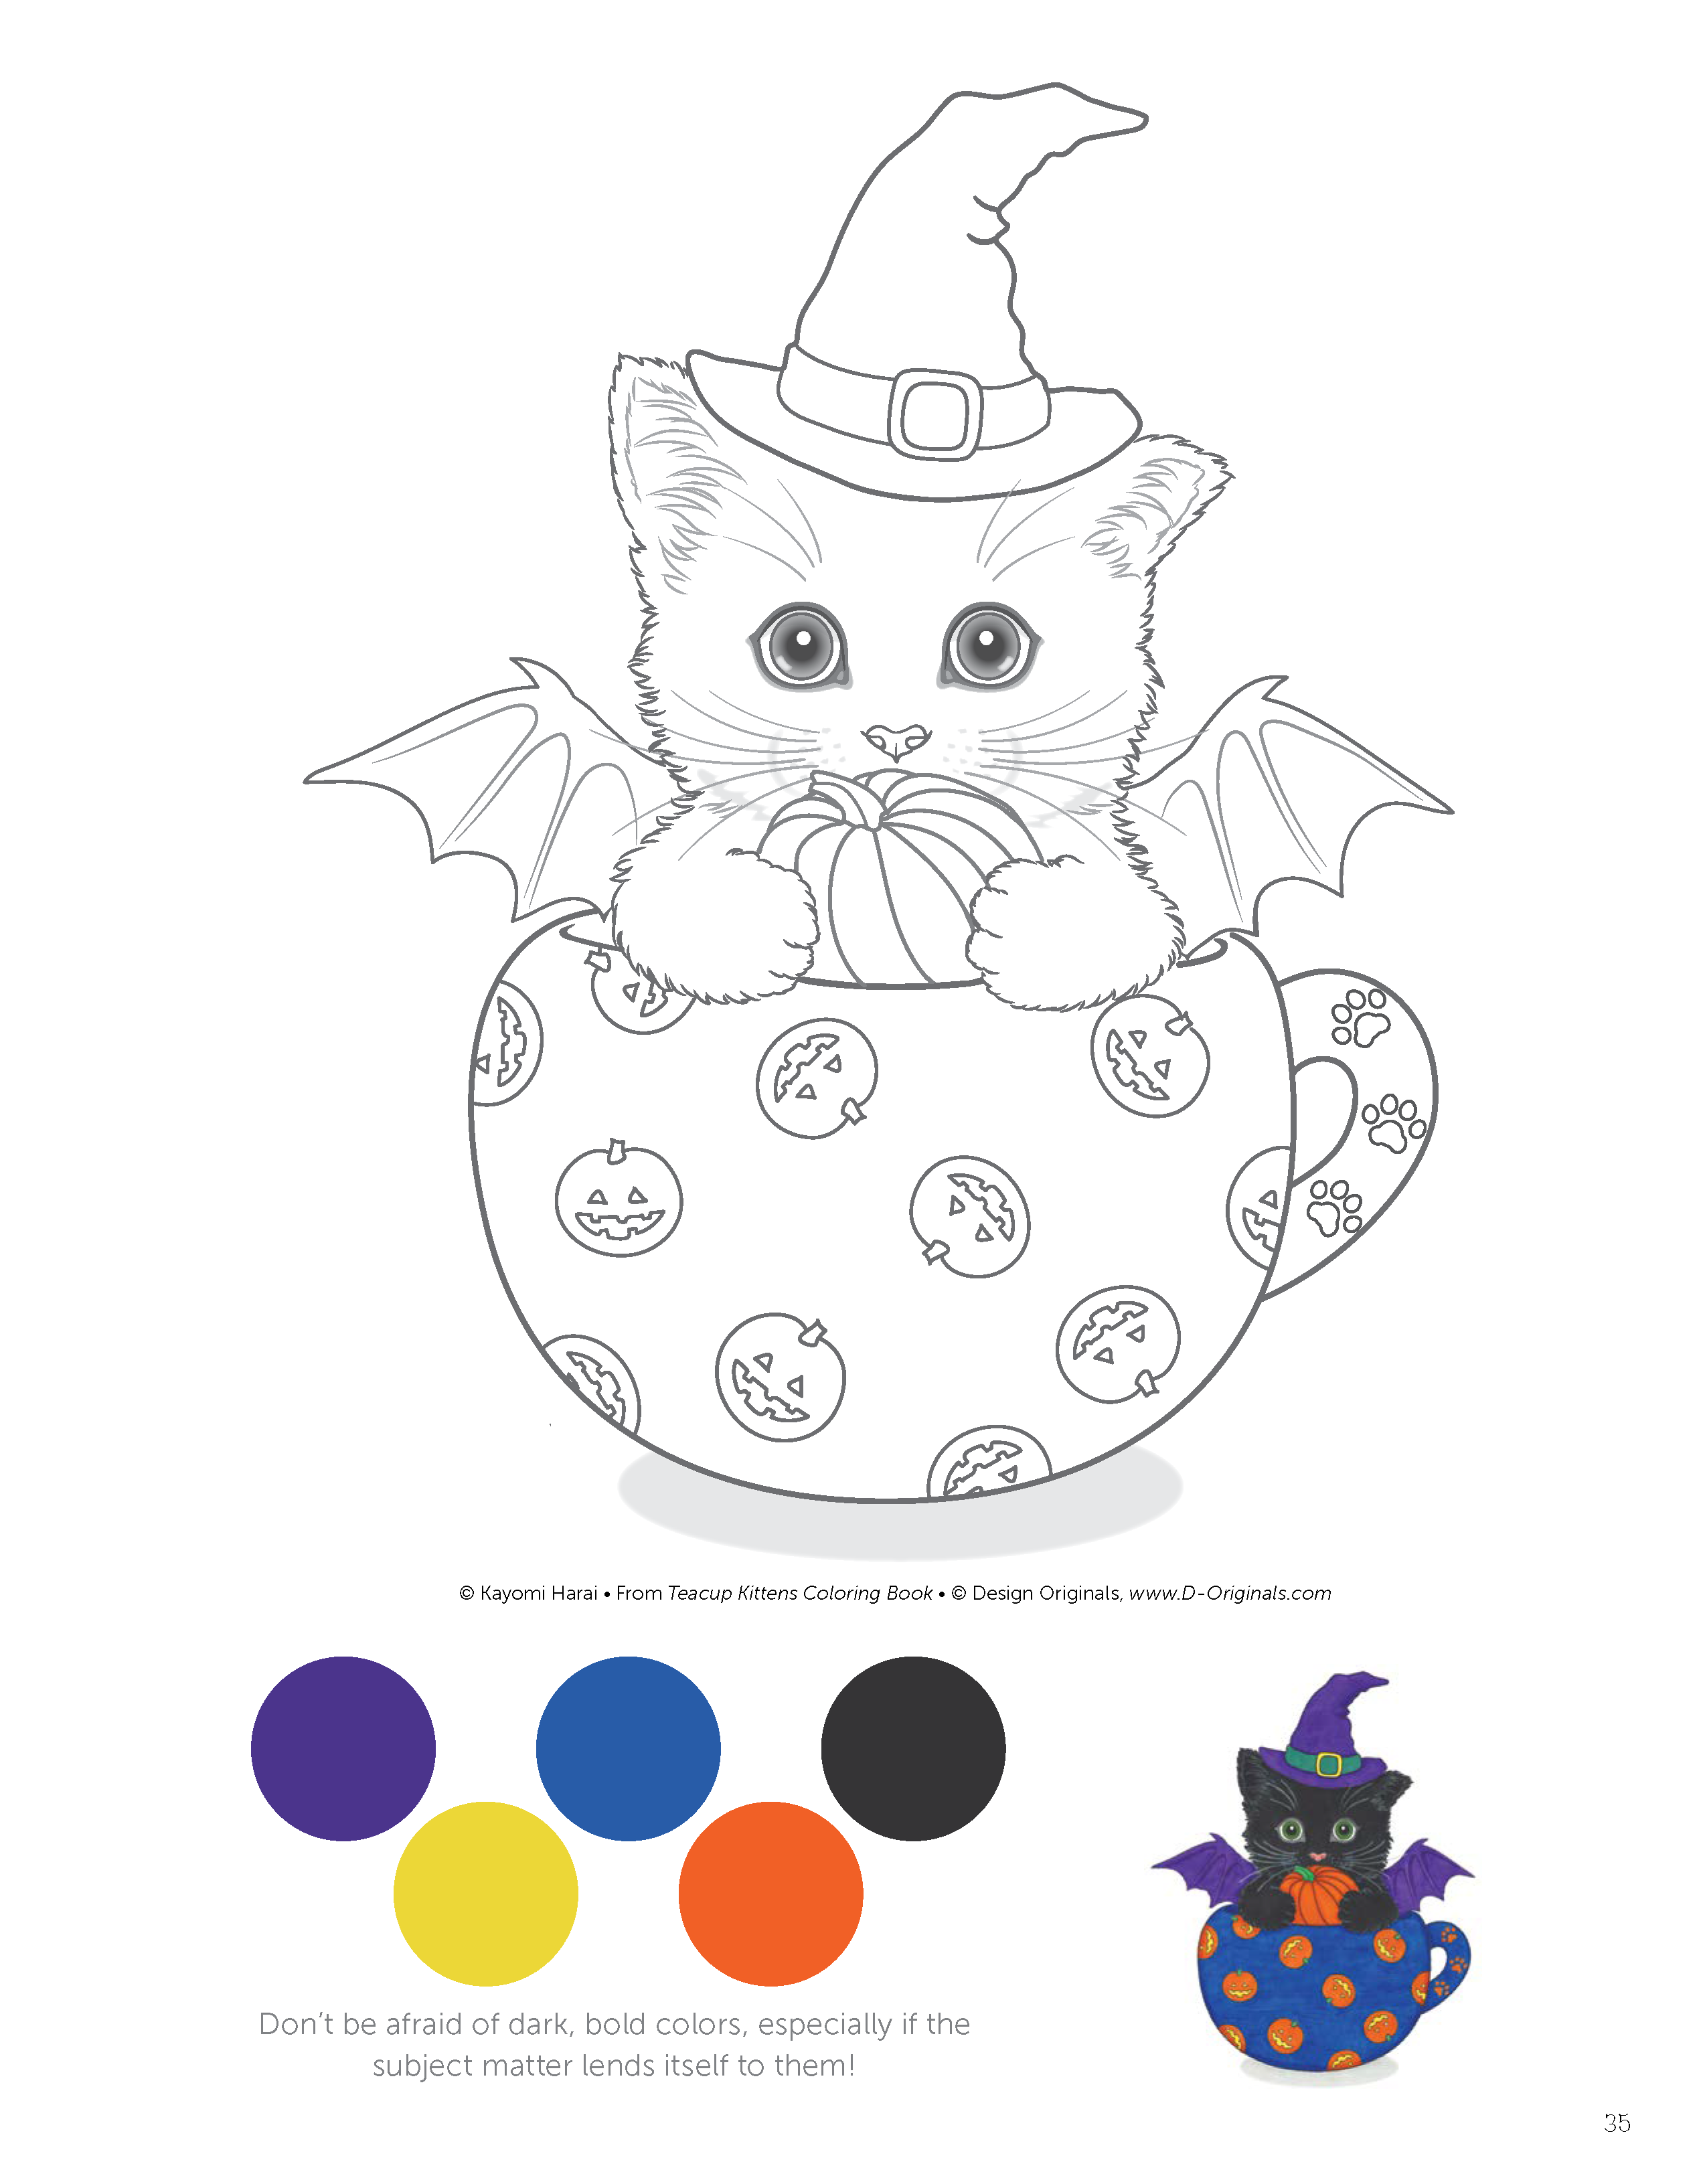 Teacup Kittens Coloring Book Design Originals 32 Adorable Expressive Eyed Cat Designs From Illustrato Coloring Books Kitten Coloring Book Cute Coloring Pages